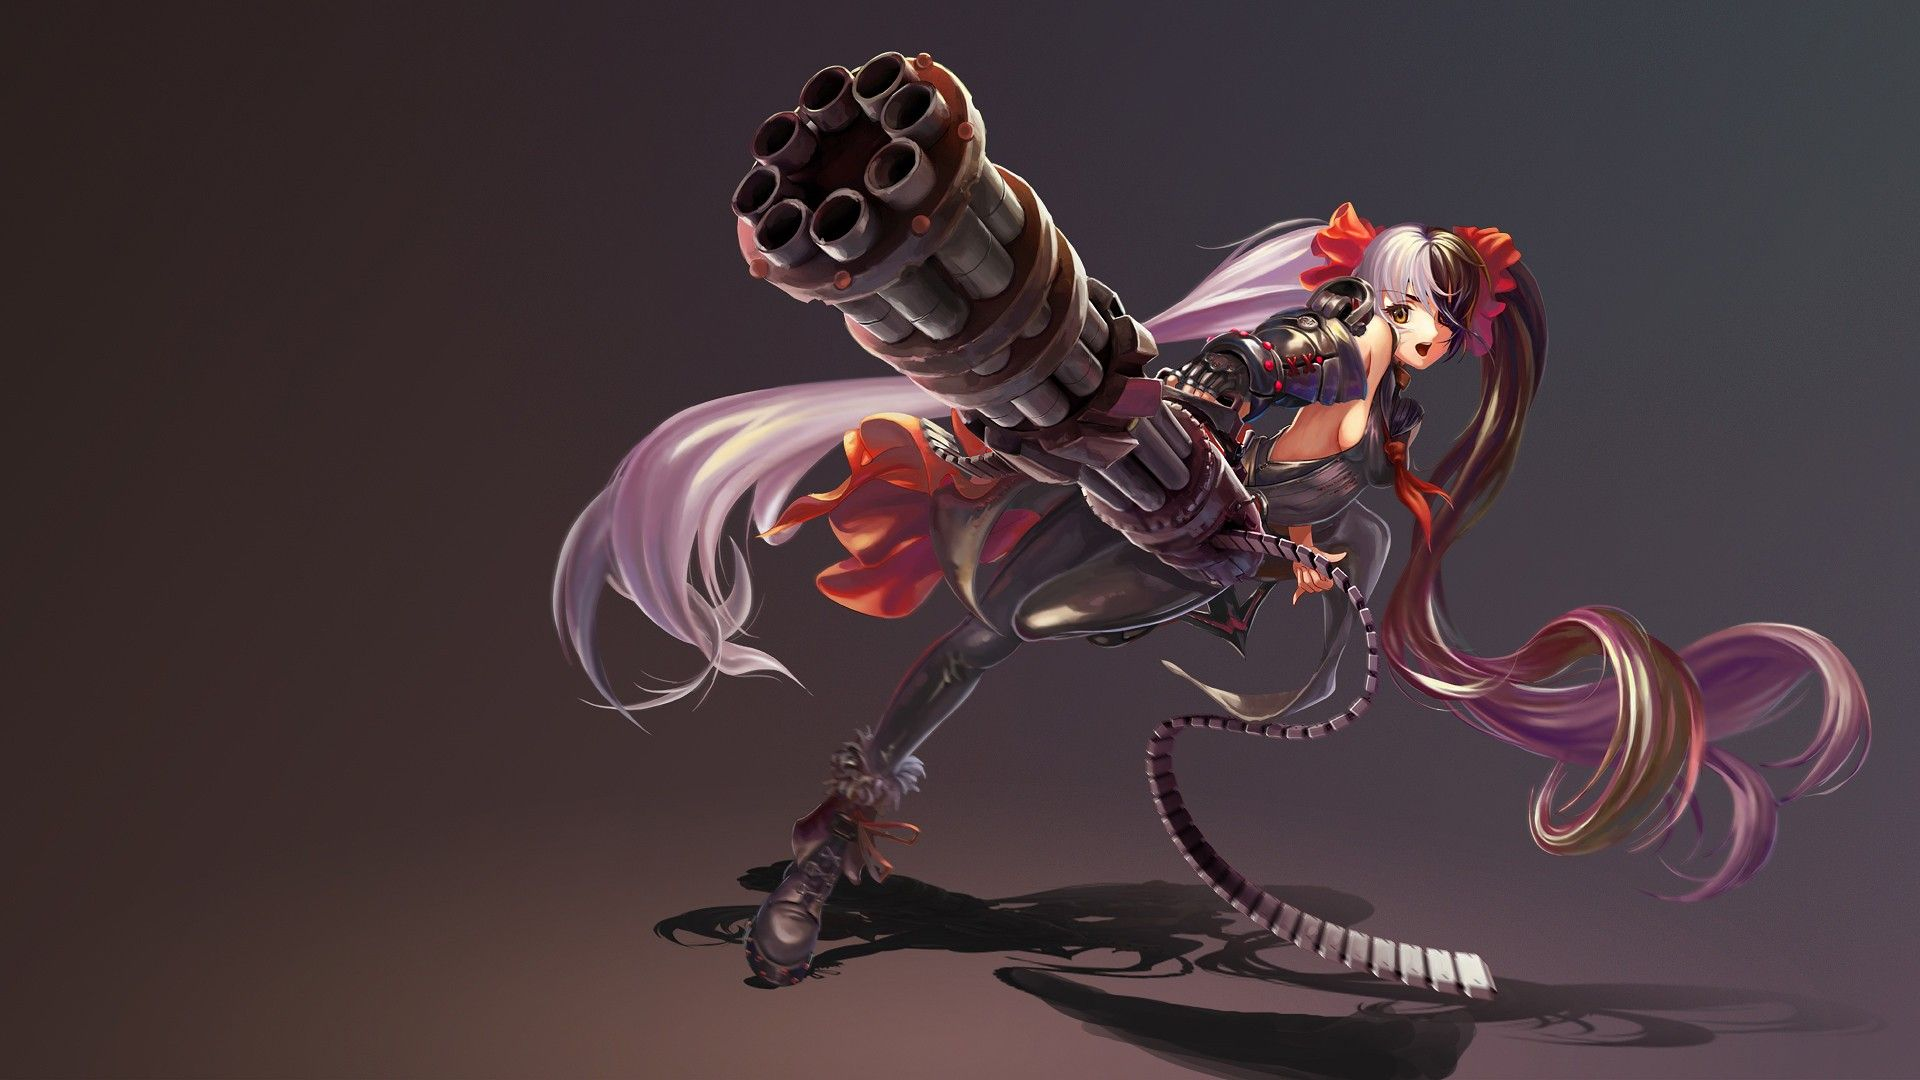 Blade and Soul, anime girls wallpaper 1920er, Boote